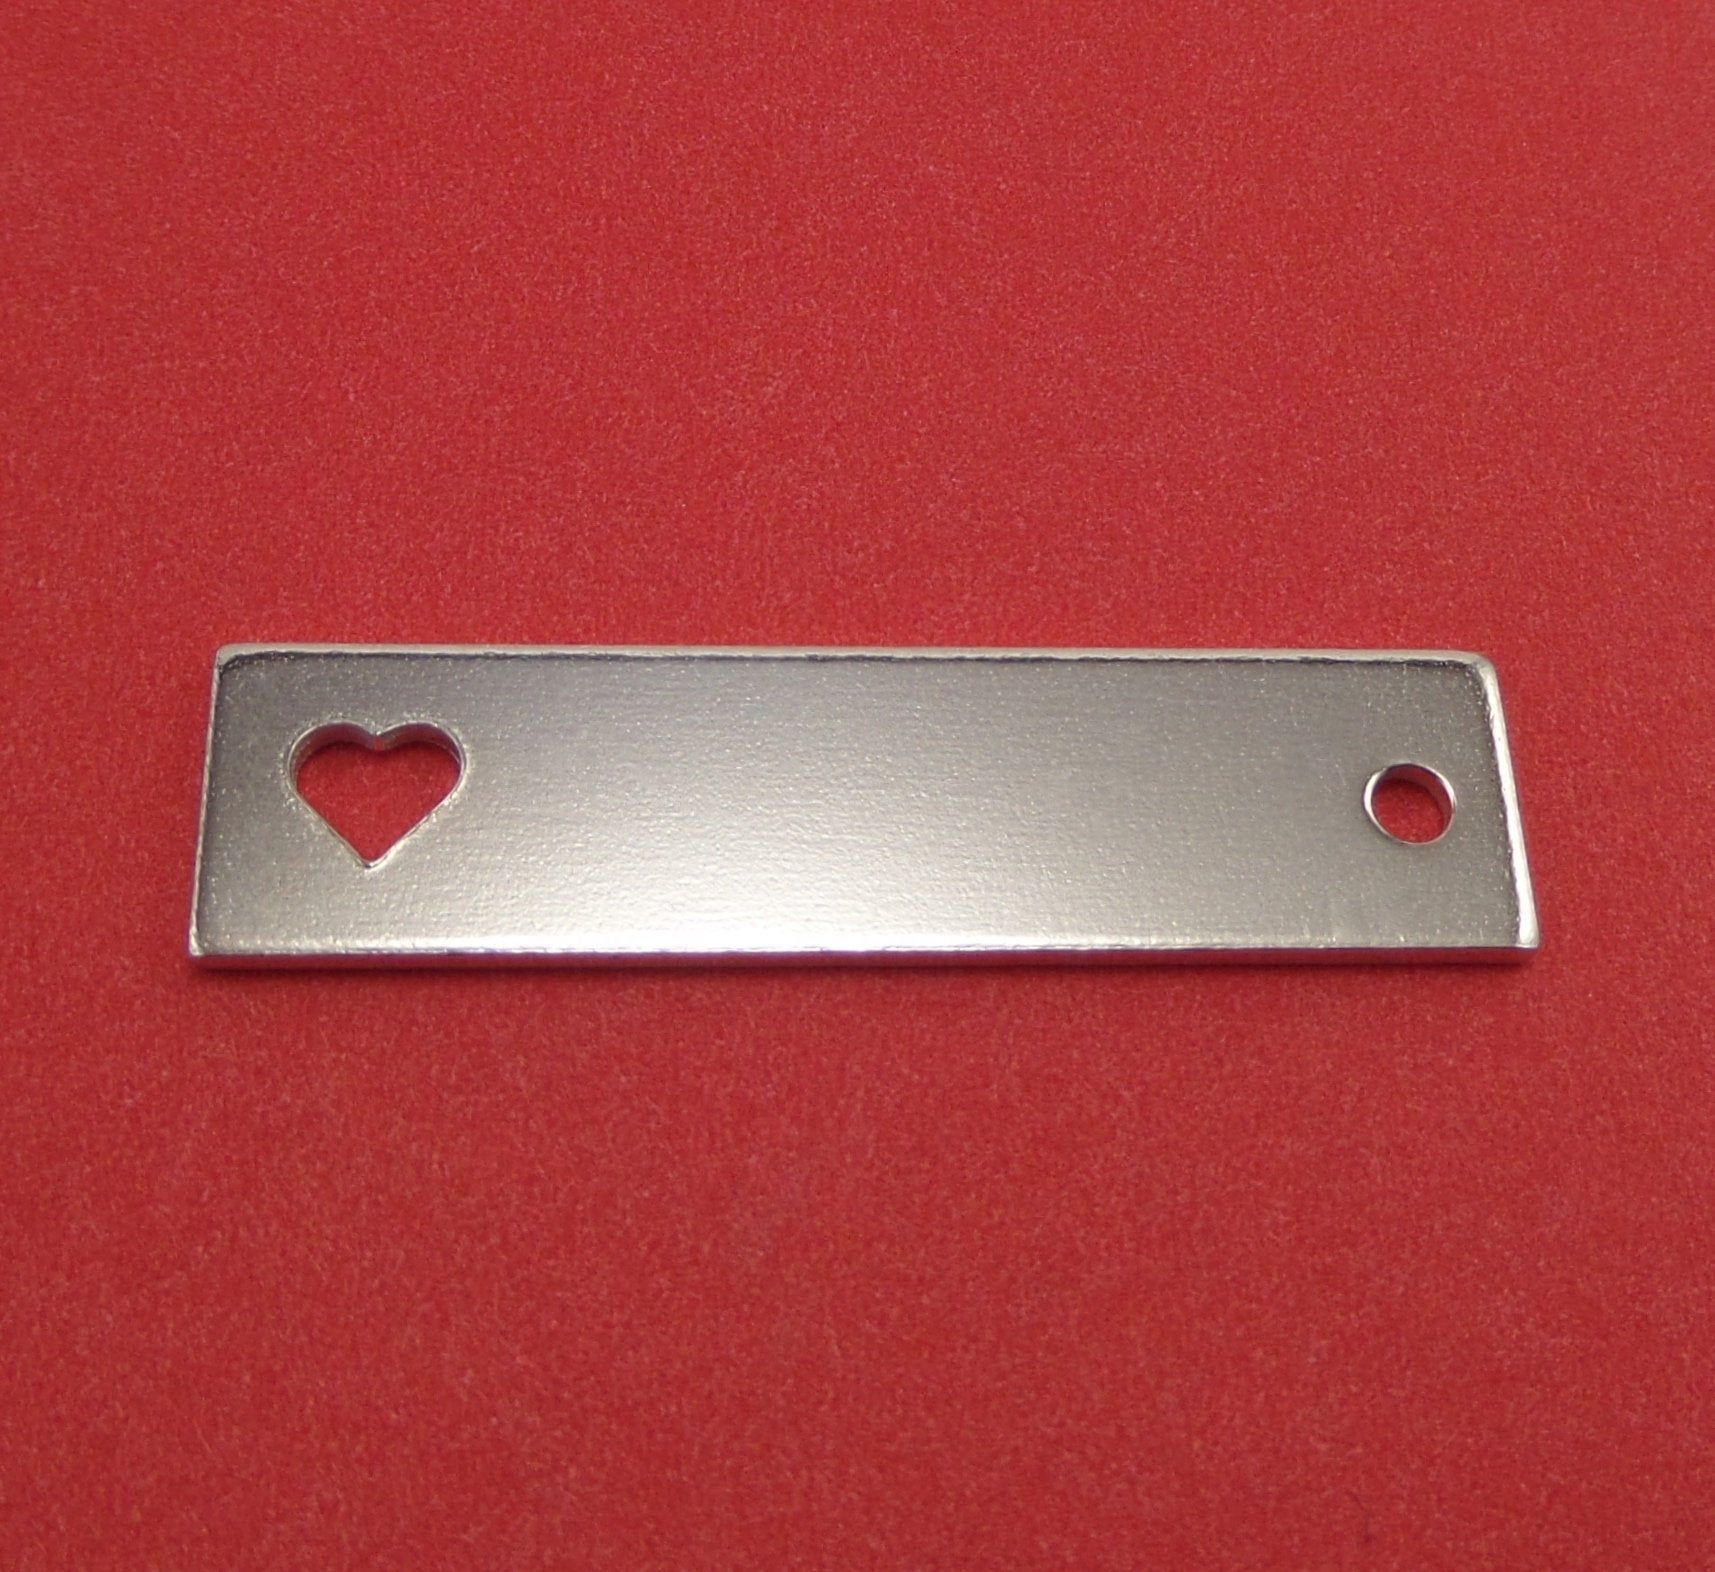 10 Square With Heart Blanks 1 2 X 2 14 Gauge Polished With 3mm Hole 3003 Aluminum 13mm X 51mm Heart Is H In 2020 Metal Stamping Supplies Metal Stamping Stamping Tools